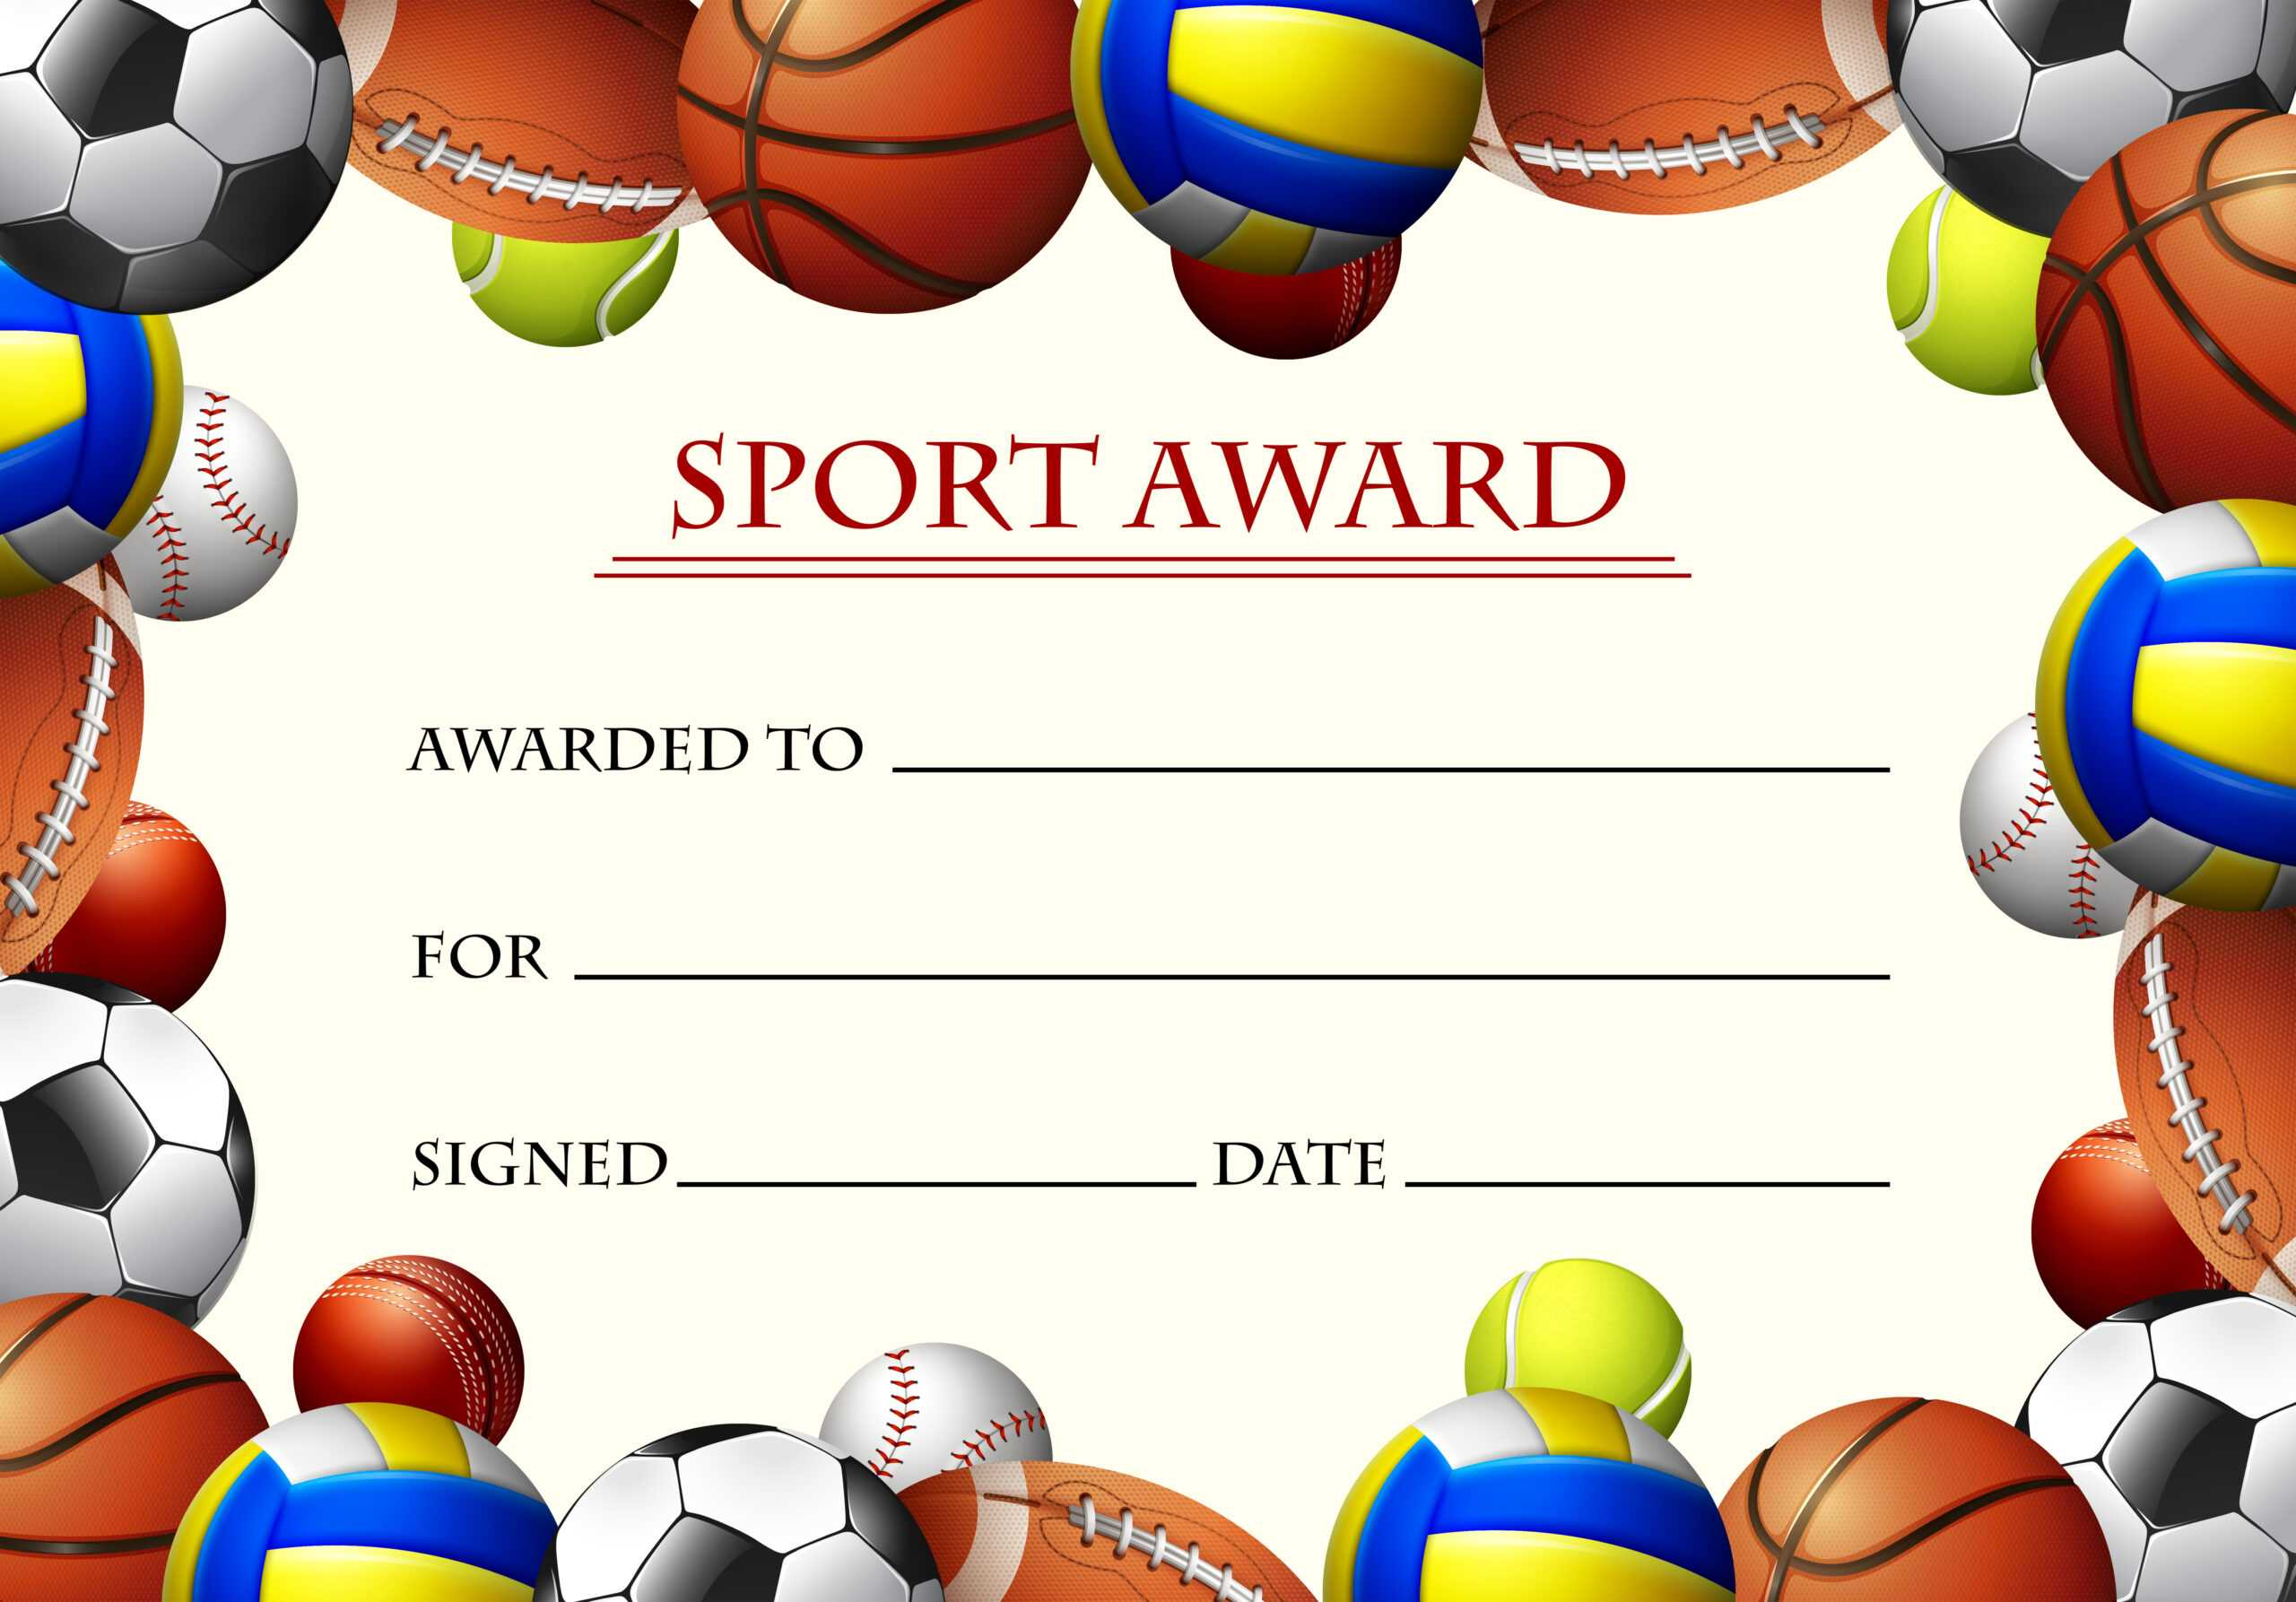 Sports Certificate Free Vector Art - (171 Free Downloads) In Sports Day Certificate Templates Free